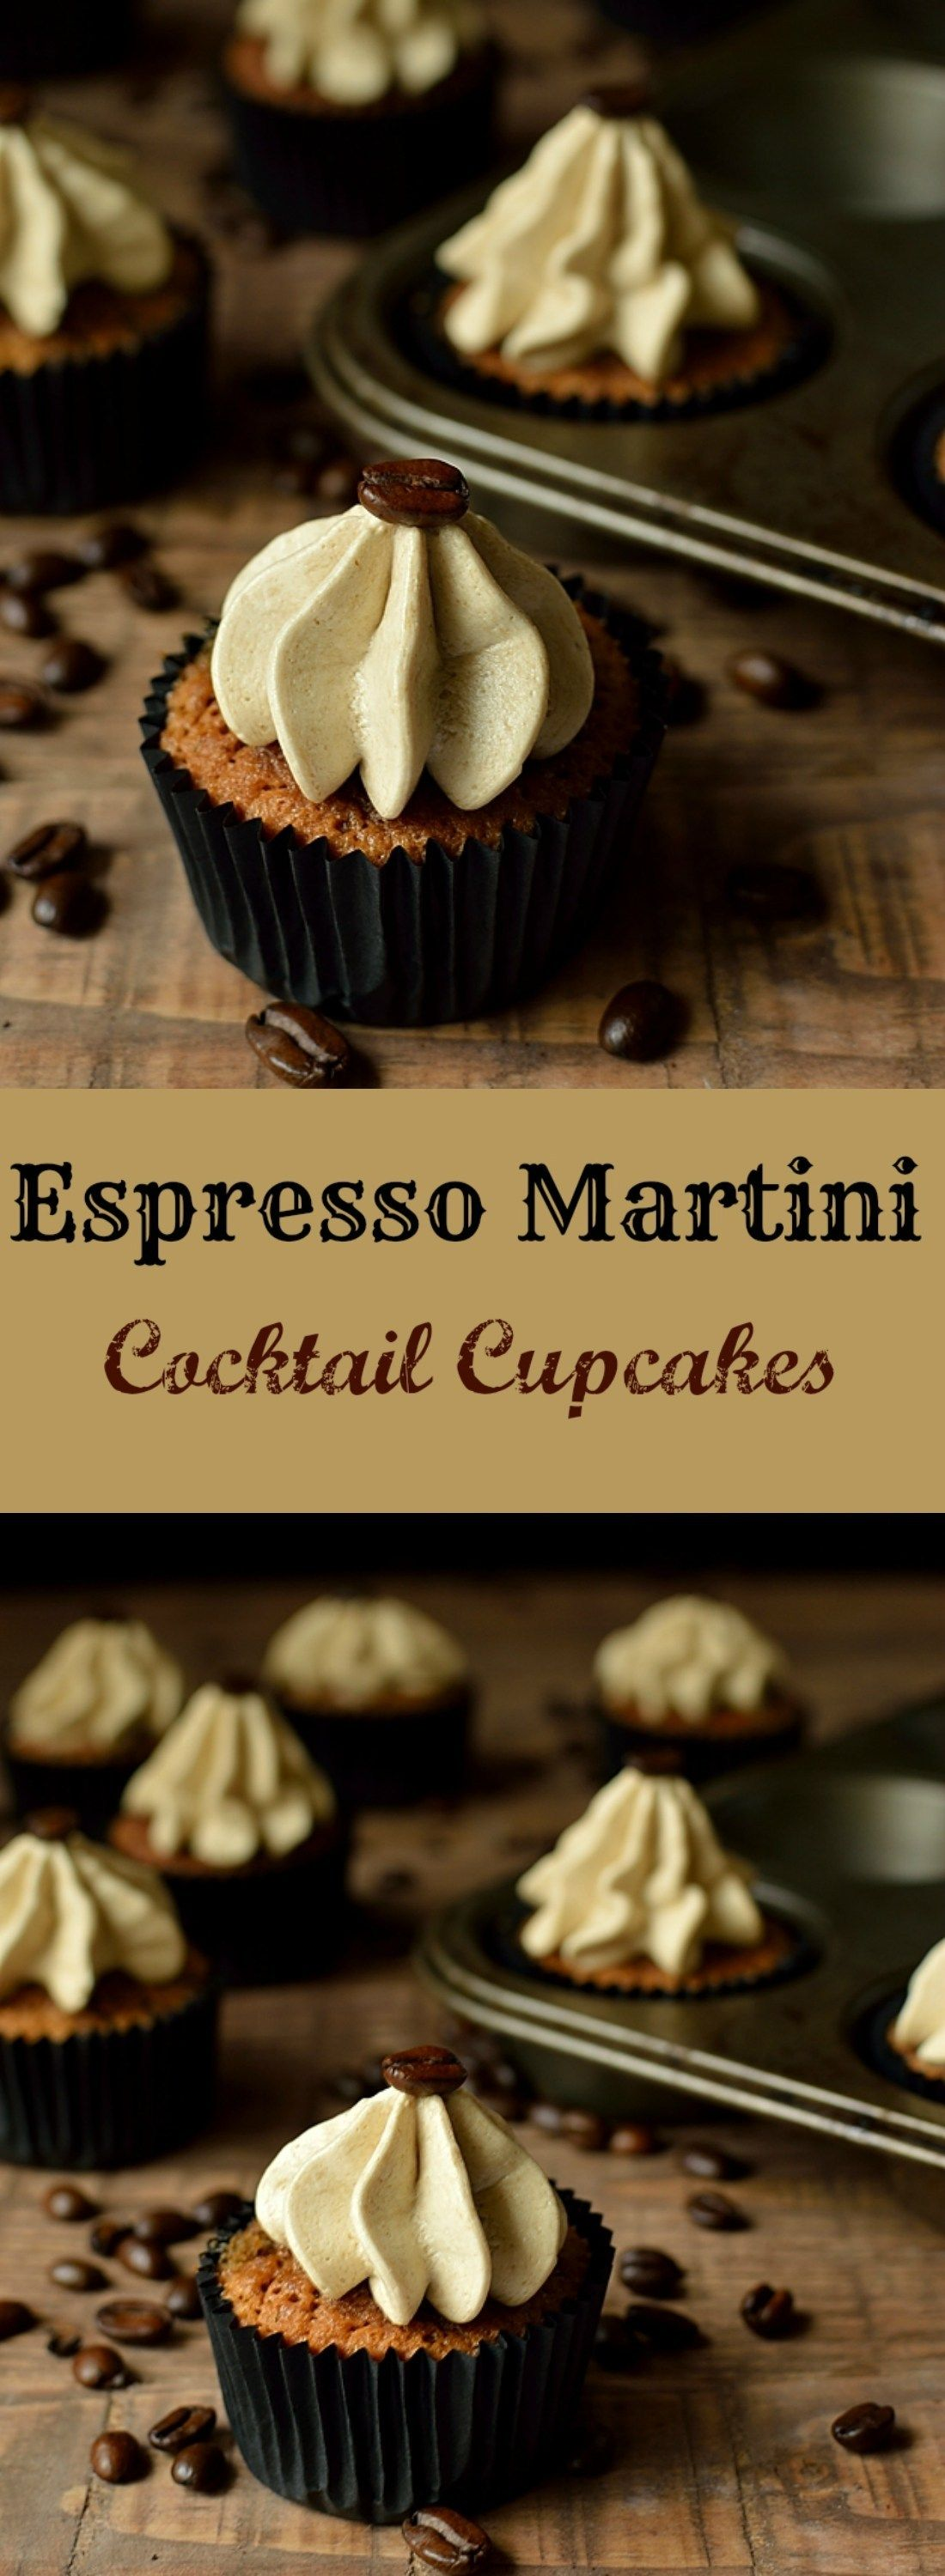 Espresso martini cocktail cupcakes, a grown up treat flavoured with Kahlua, vodka and coffee #espressocoffee